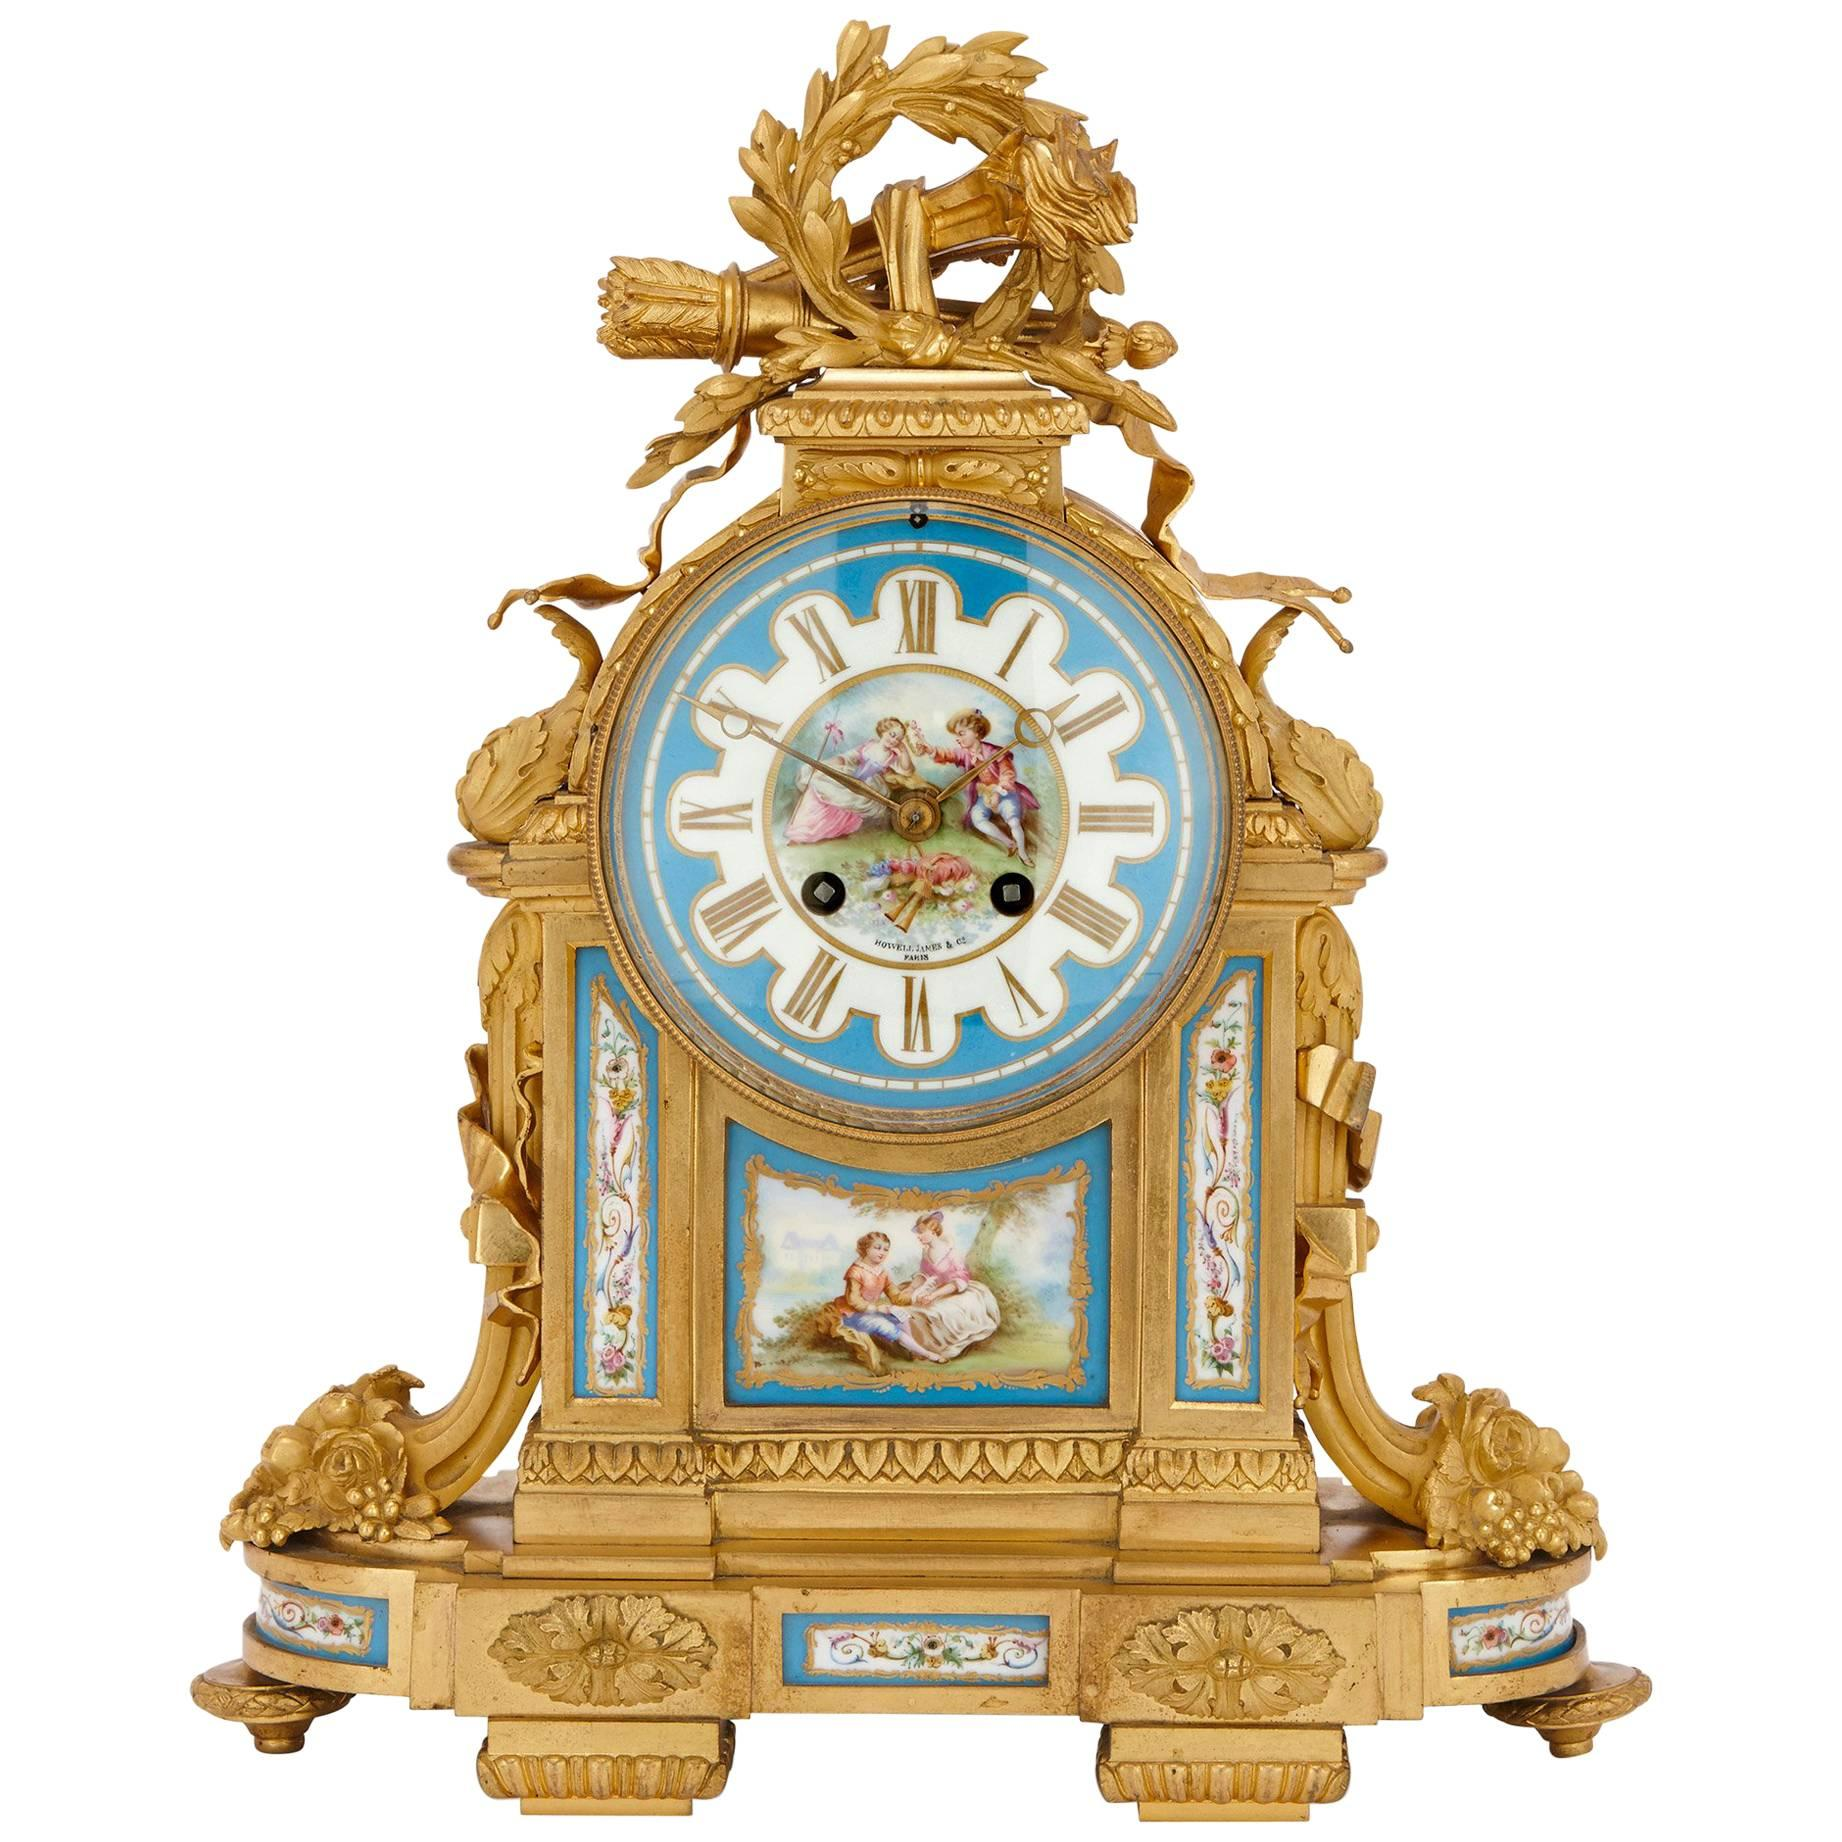 Antique French Sevres Style Porcelain and Gilt Bronze Mantel Clock